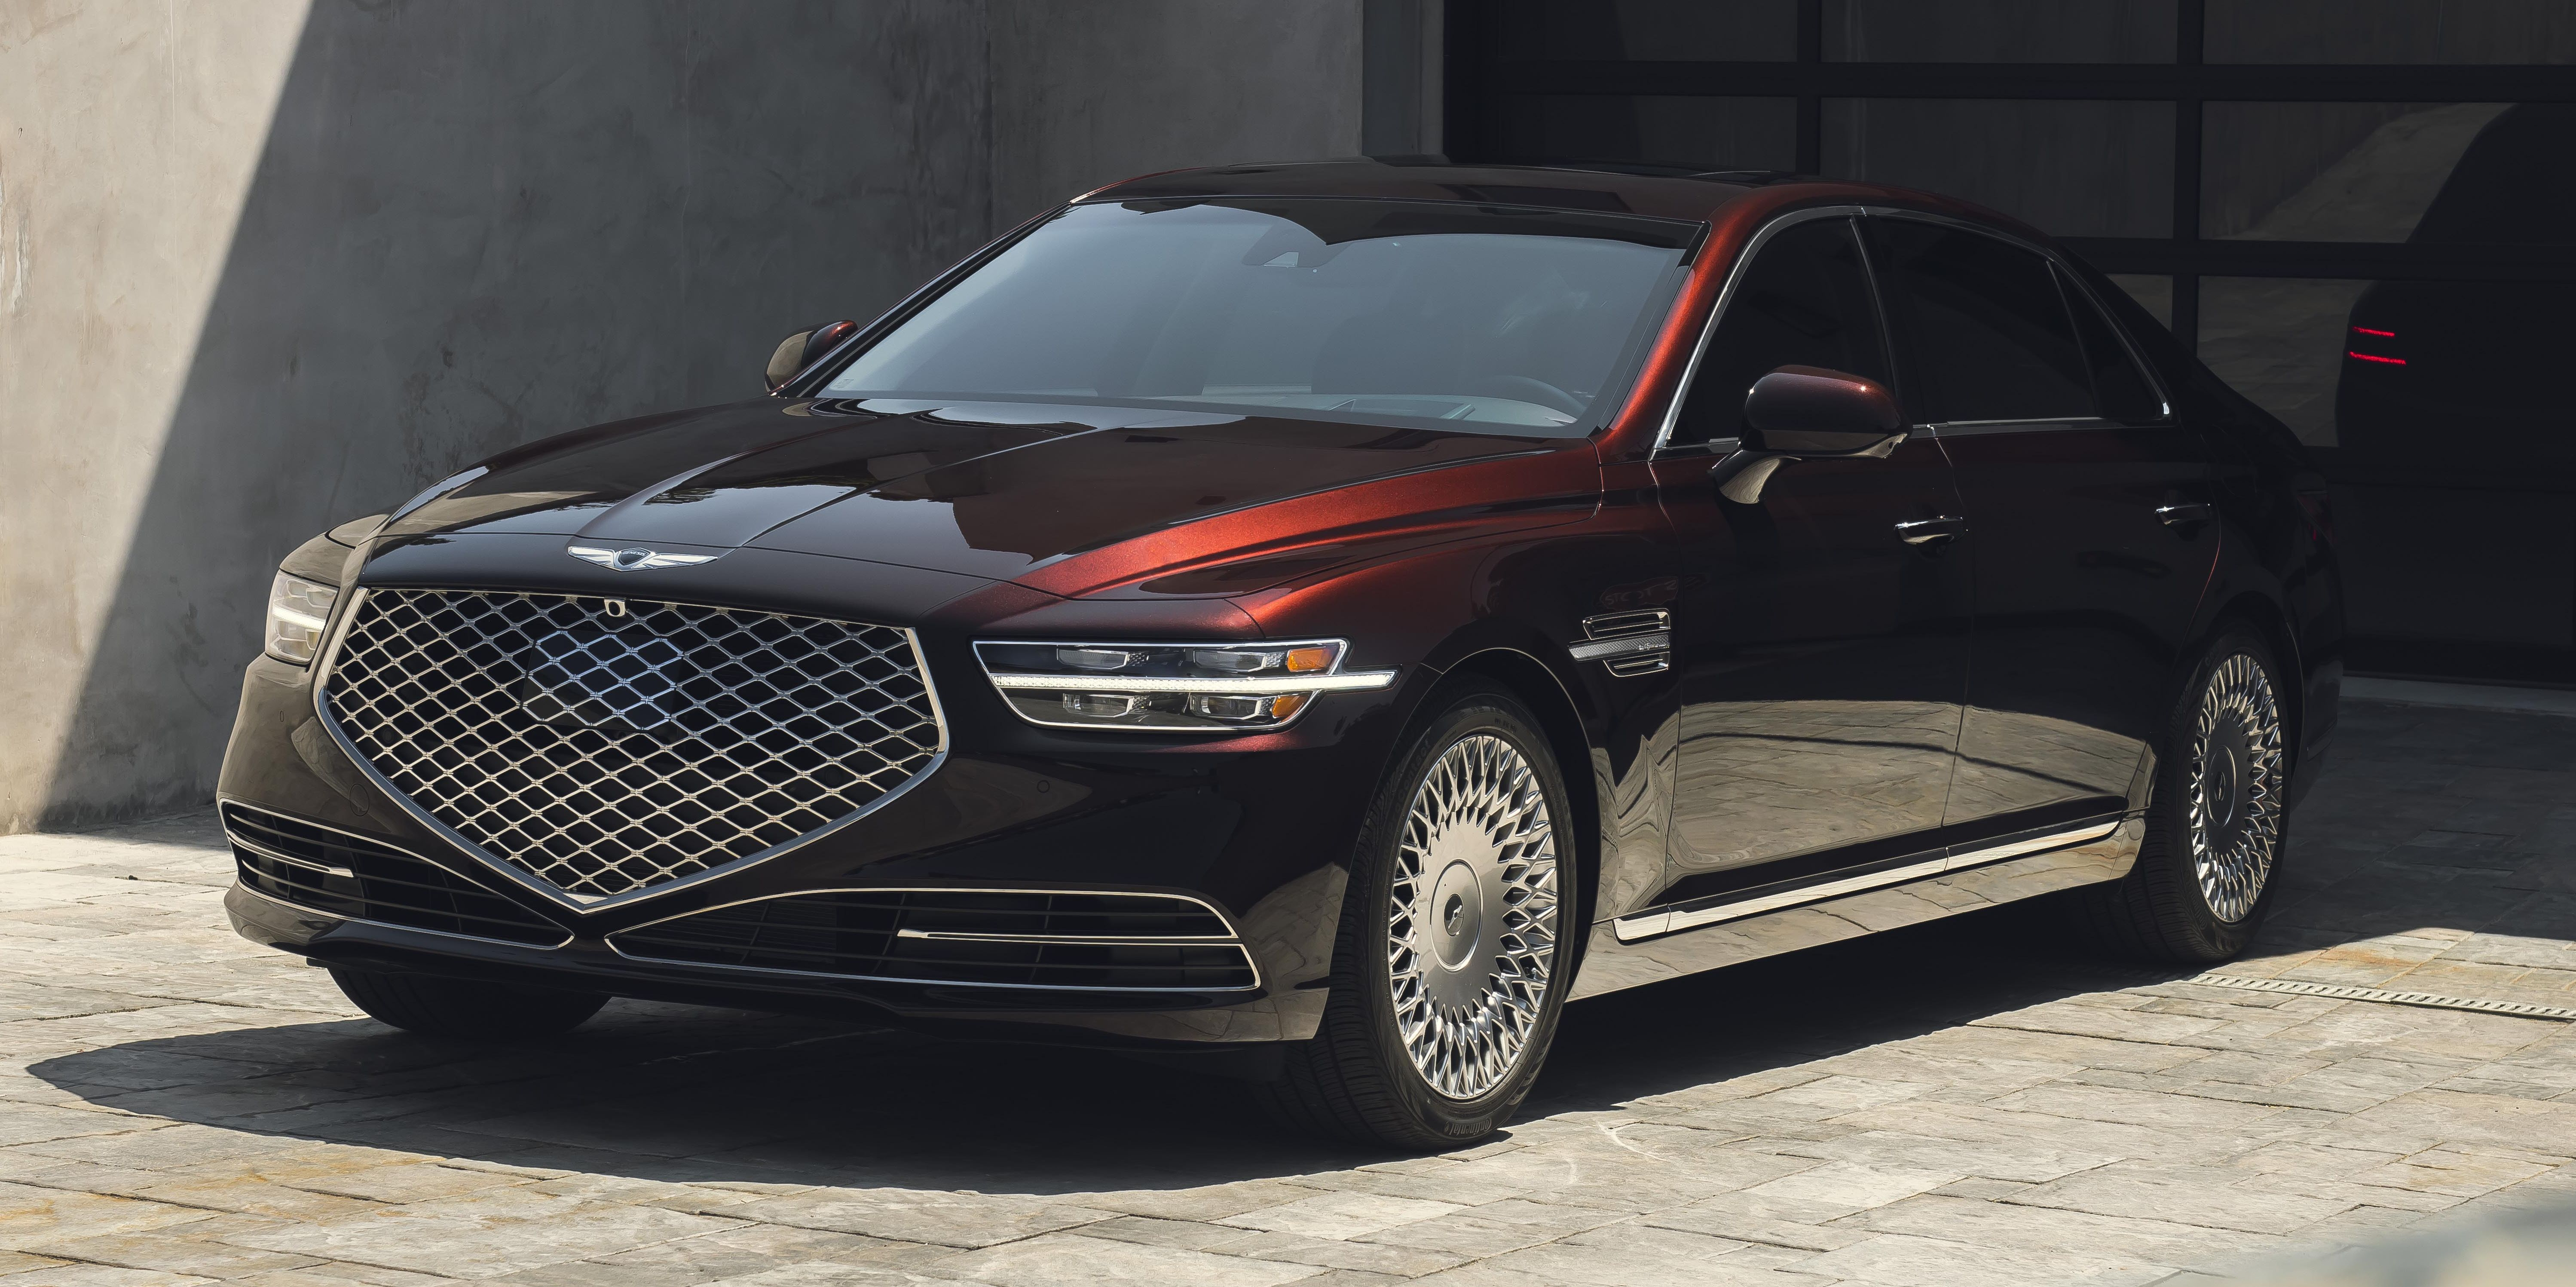 2020 Genesis G90 Gets Extreme New Styling More Safety Features Genesis Top Cars Premium Cars